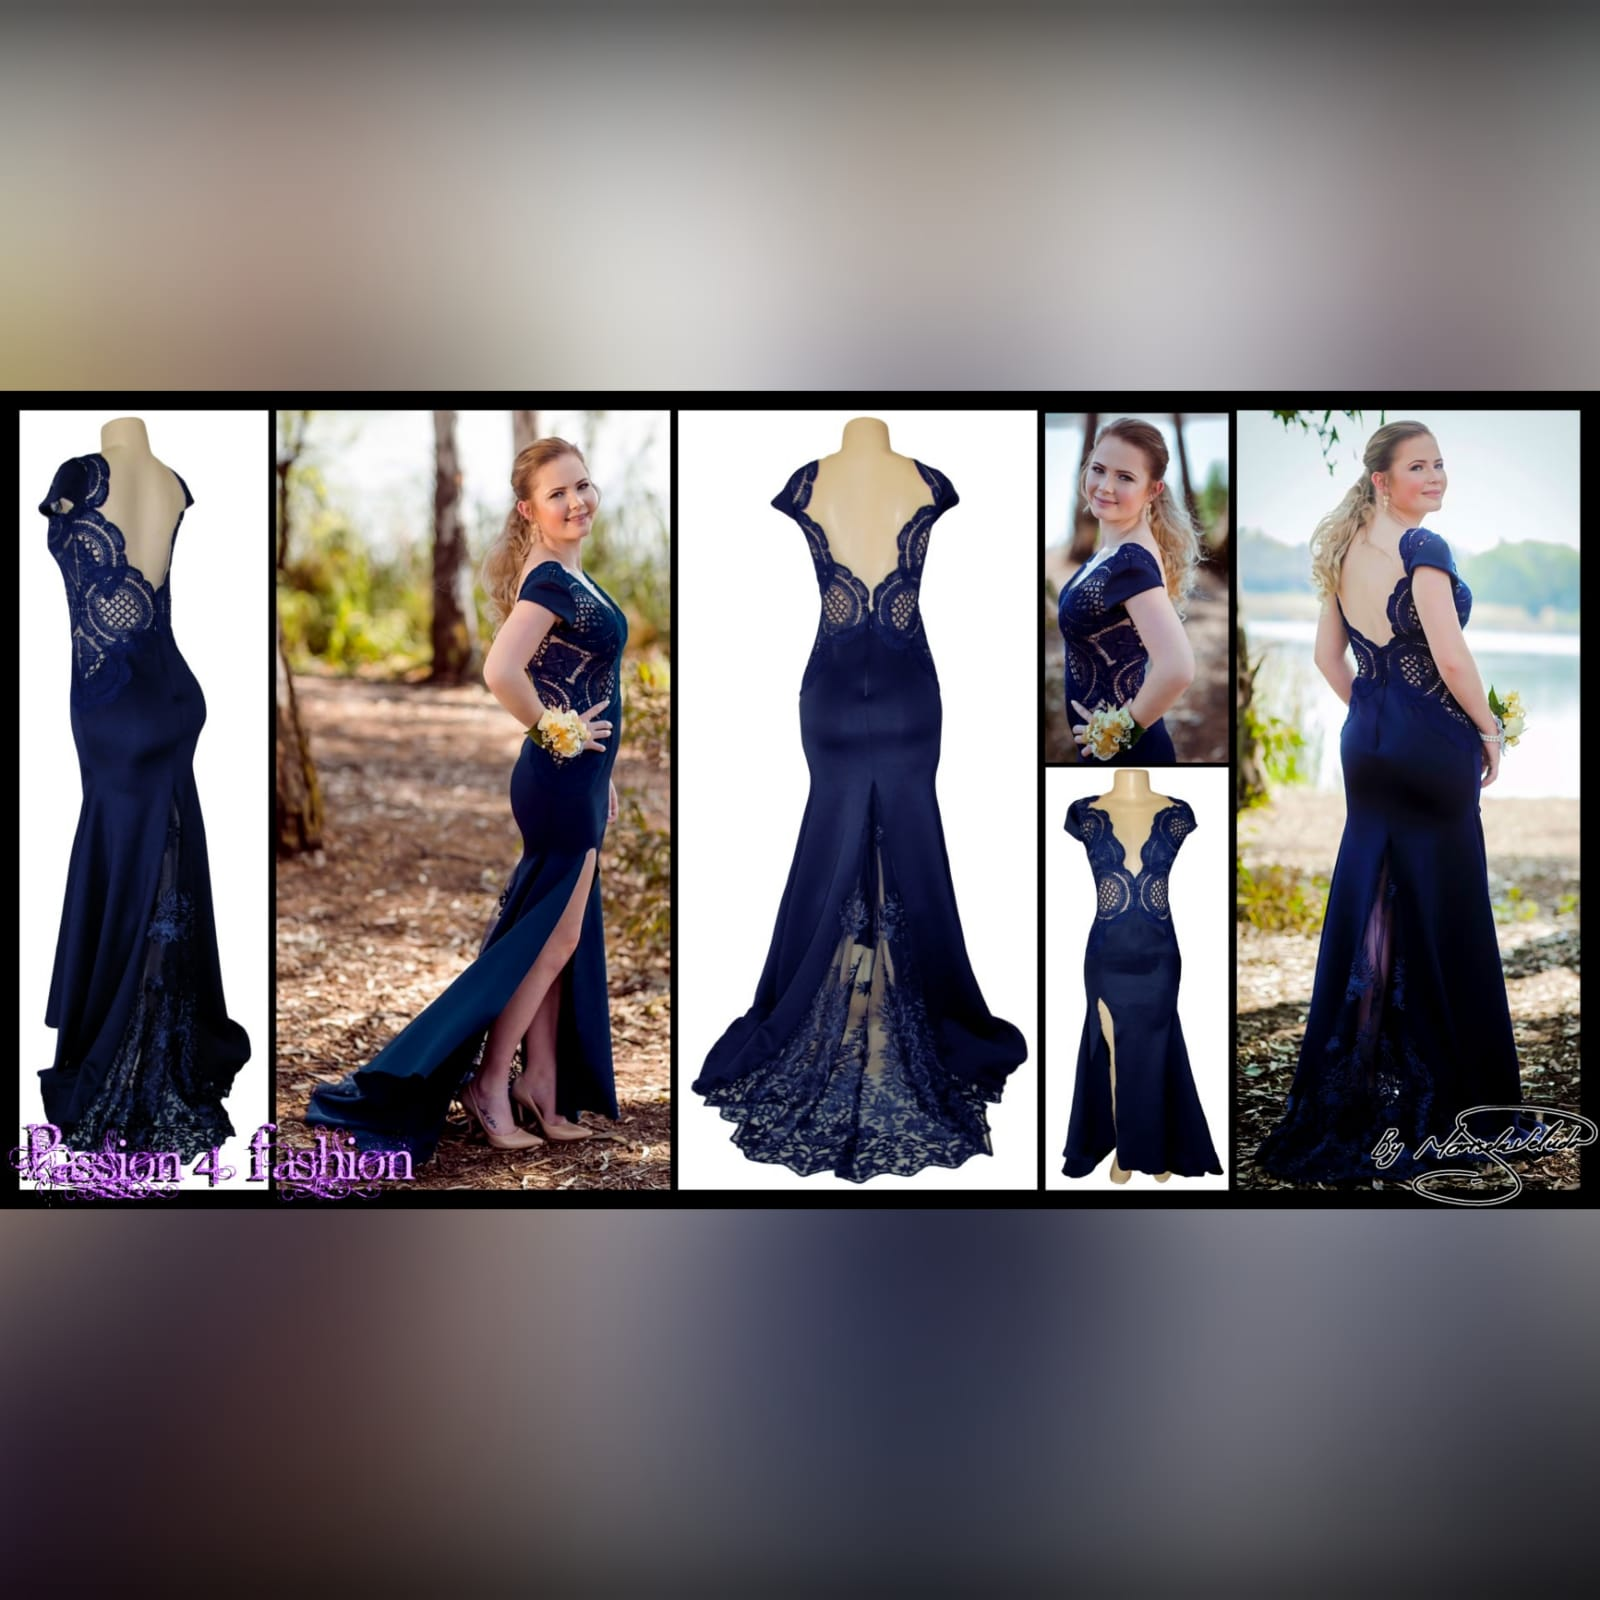 Navy blue long flowy dress with lace bodice 6 navy blue long flowy dress with lace bodice, v neckline & low v open back with a slit.